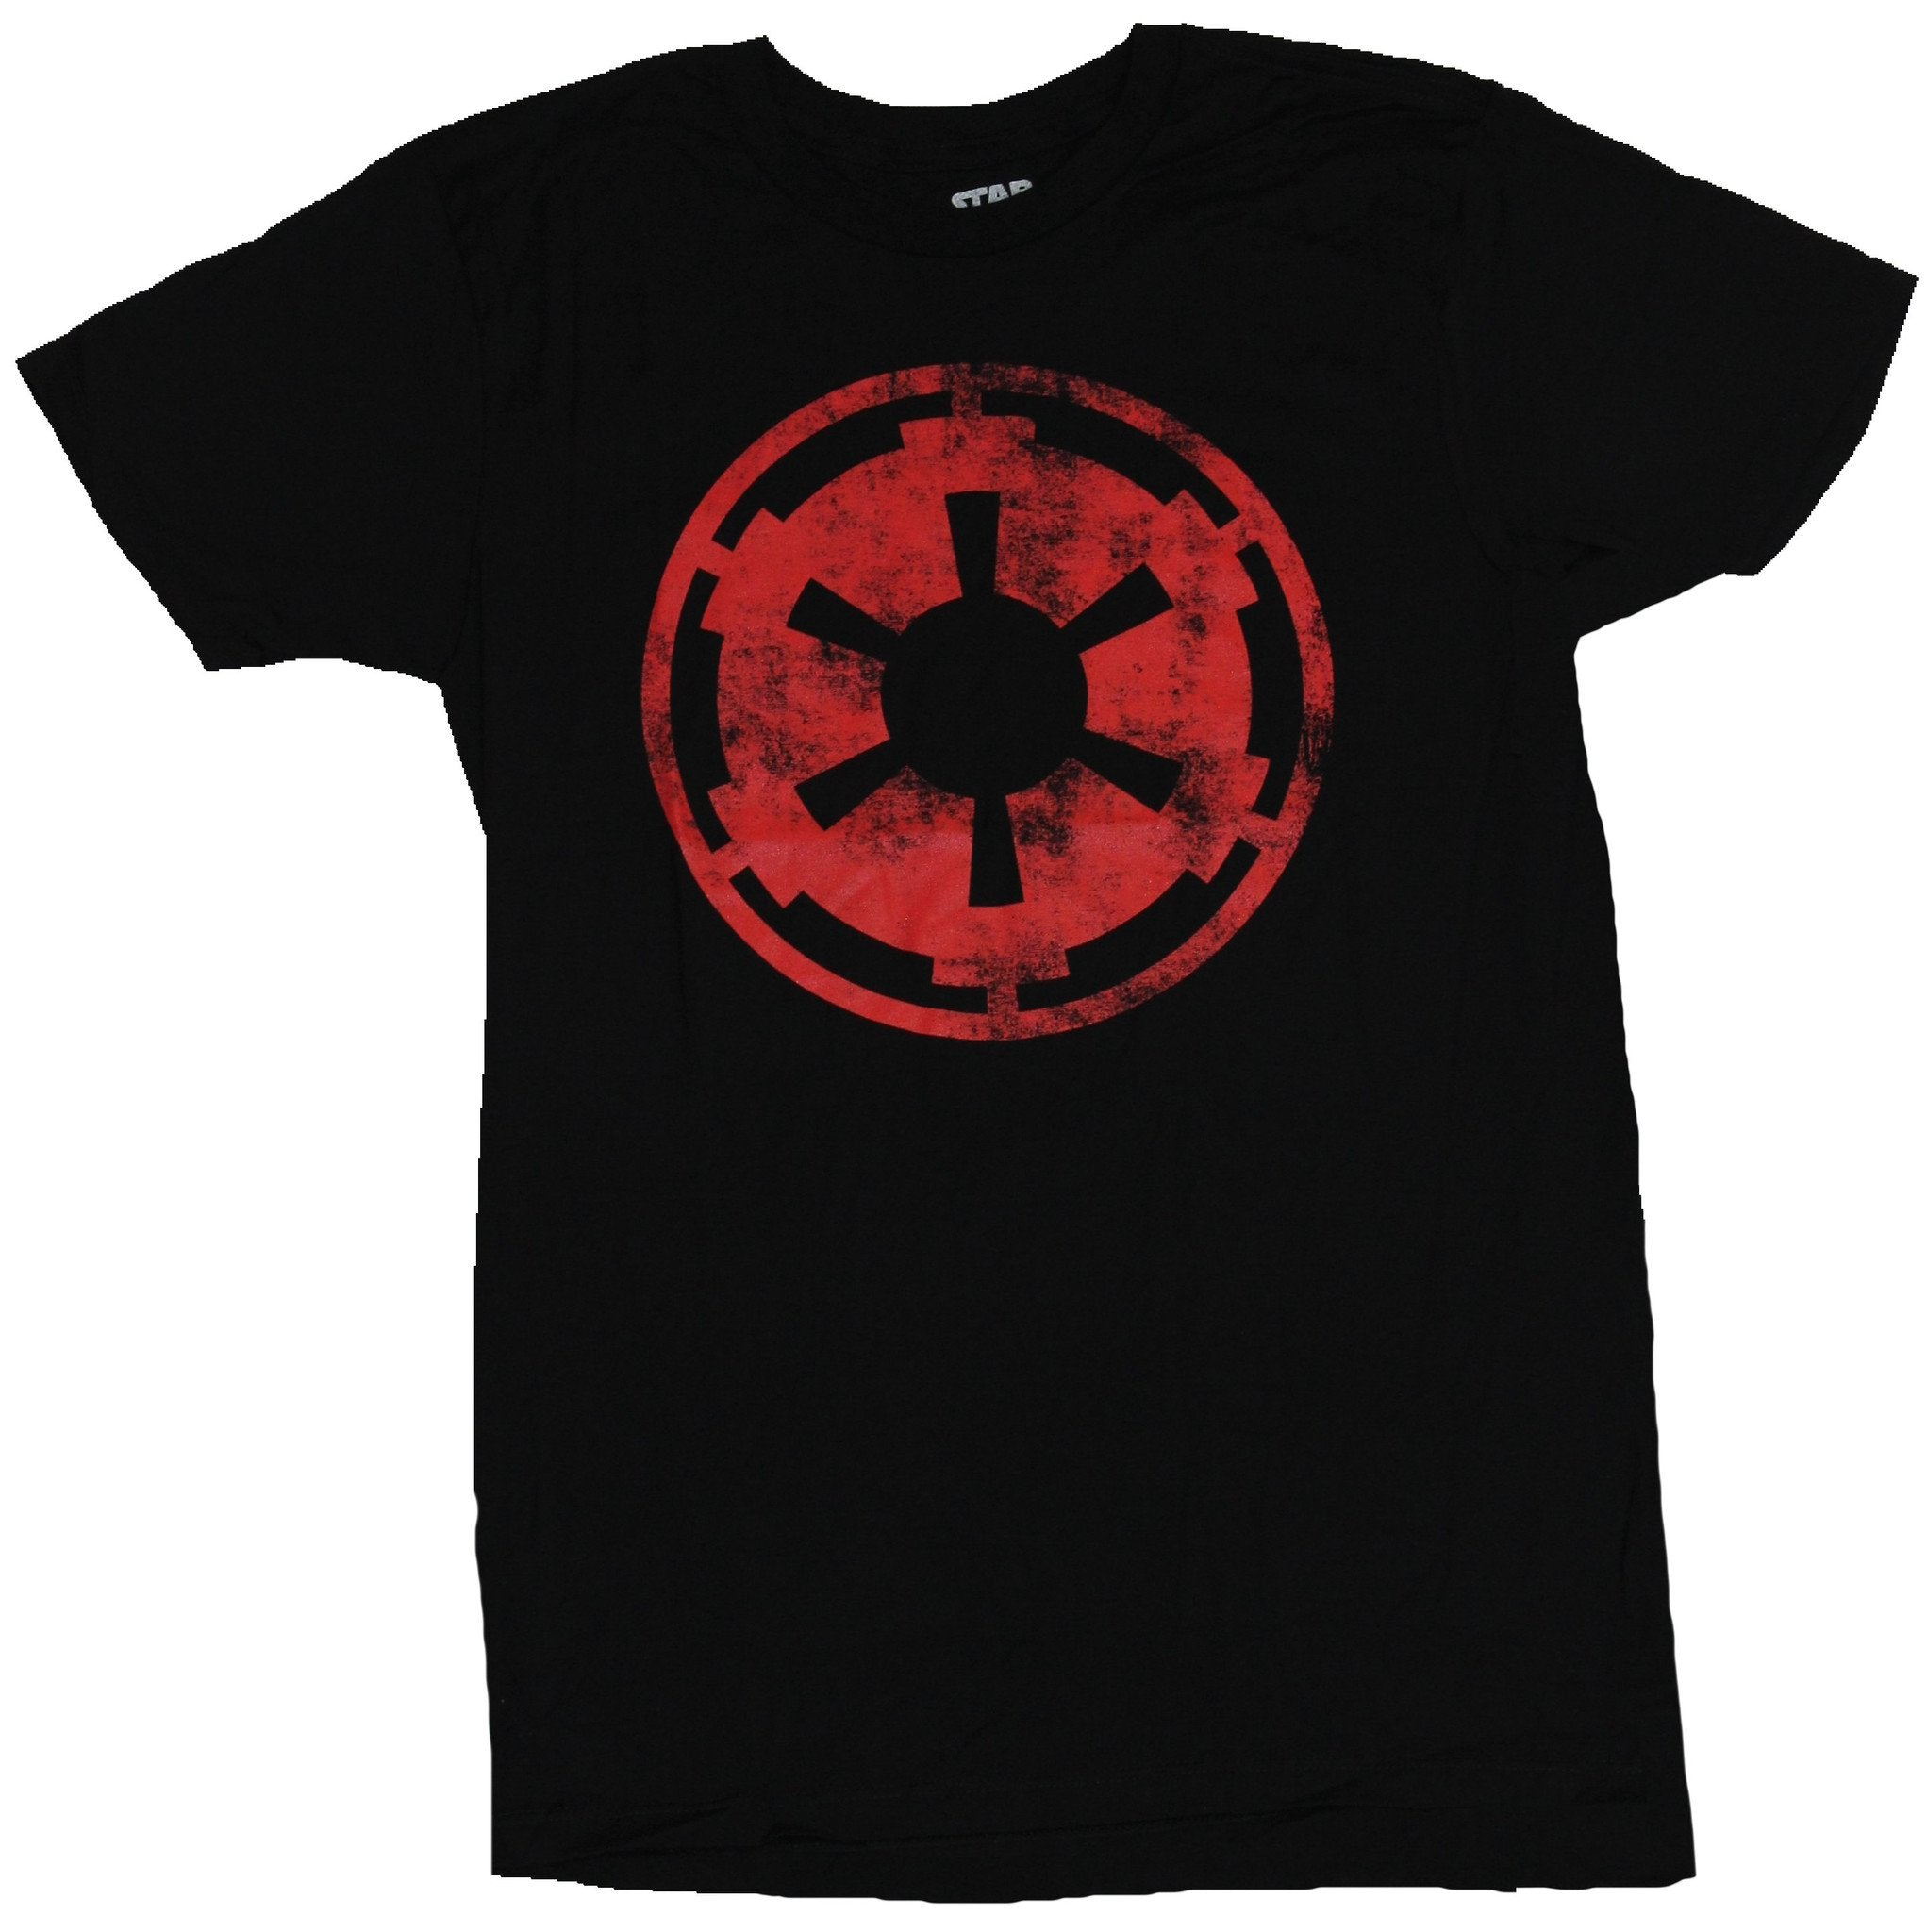 Star Wars Mens T-shirt - Distressed Red Empire Logo Image